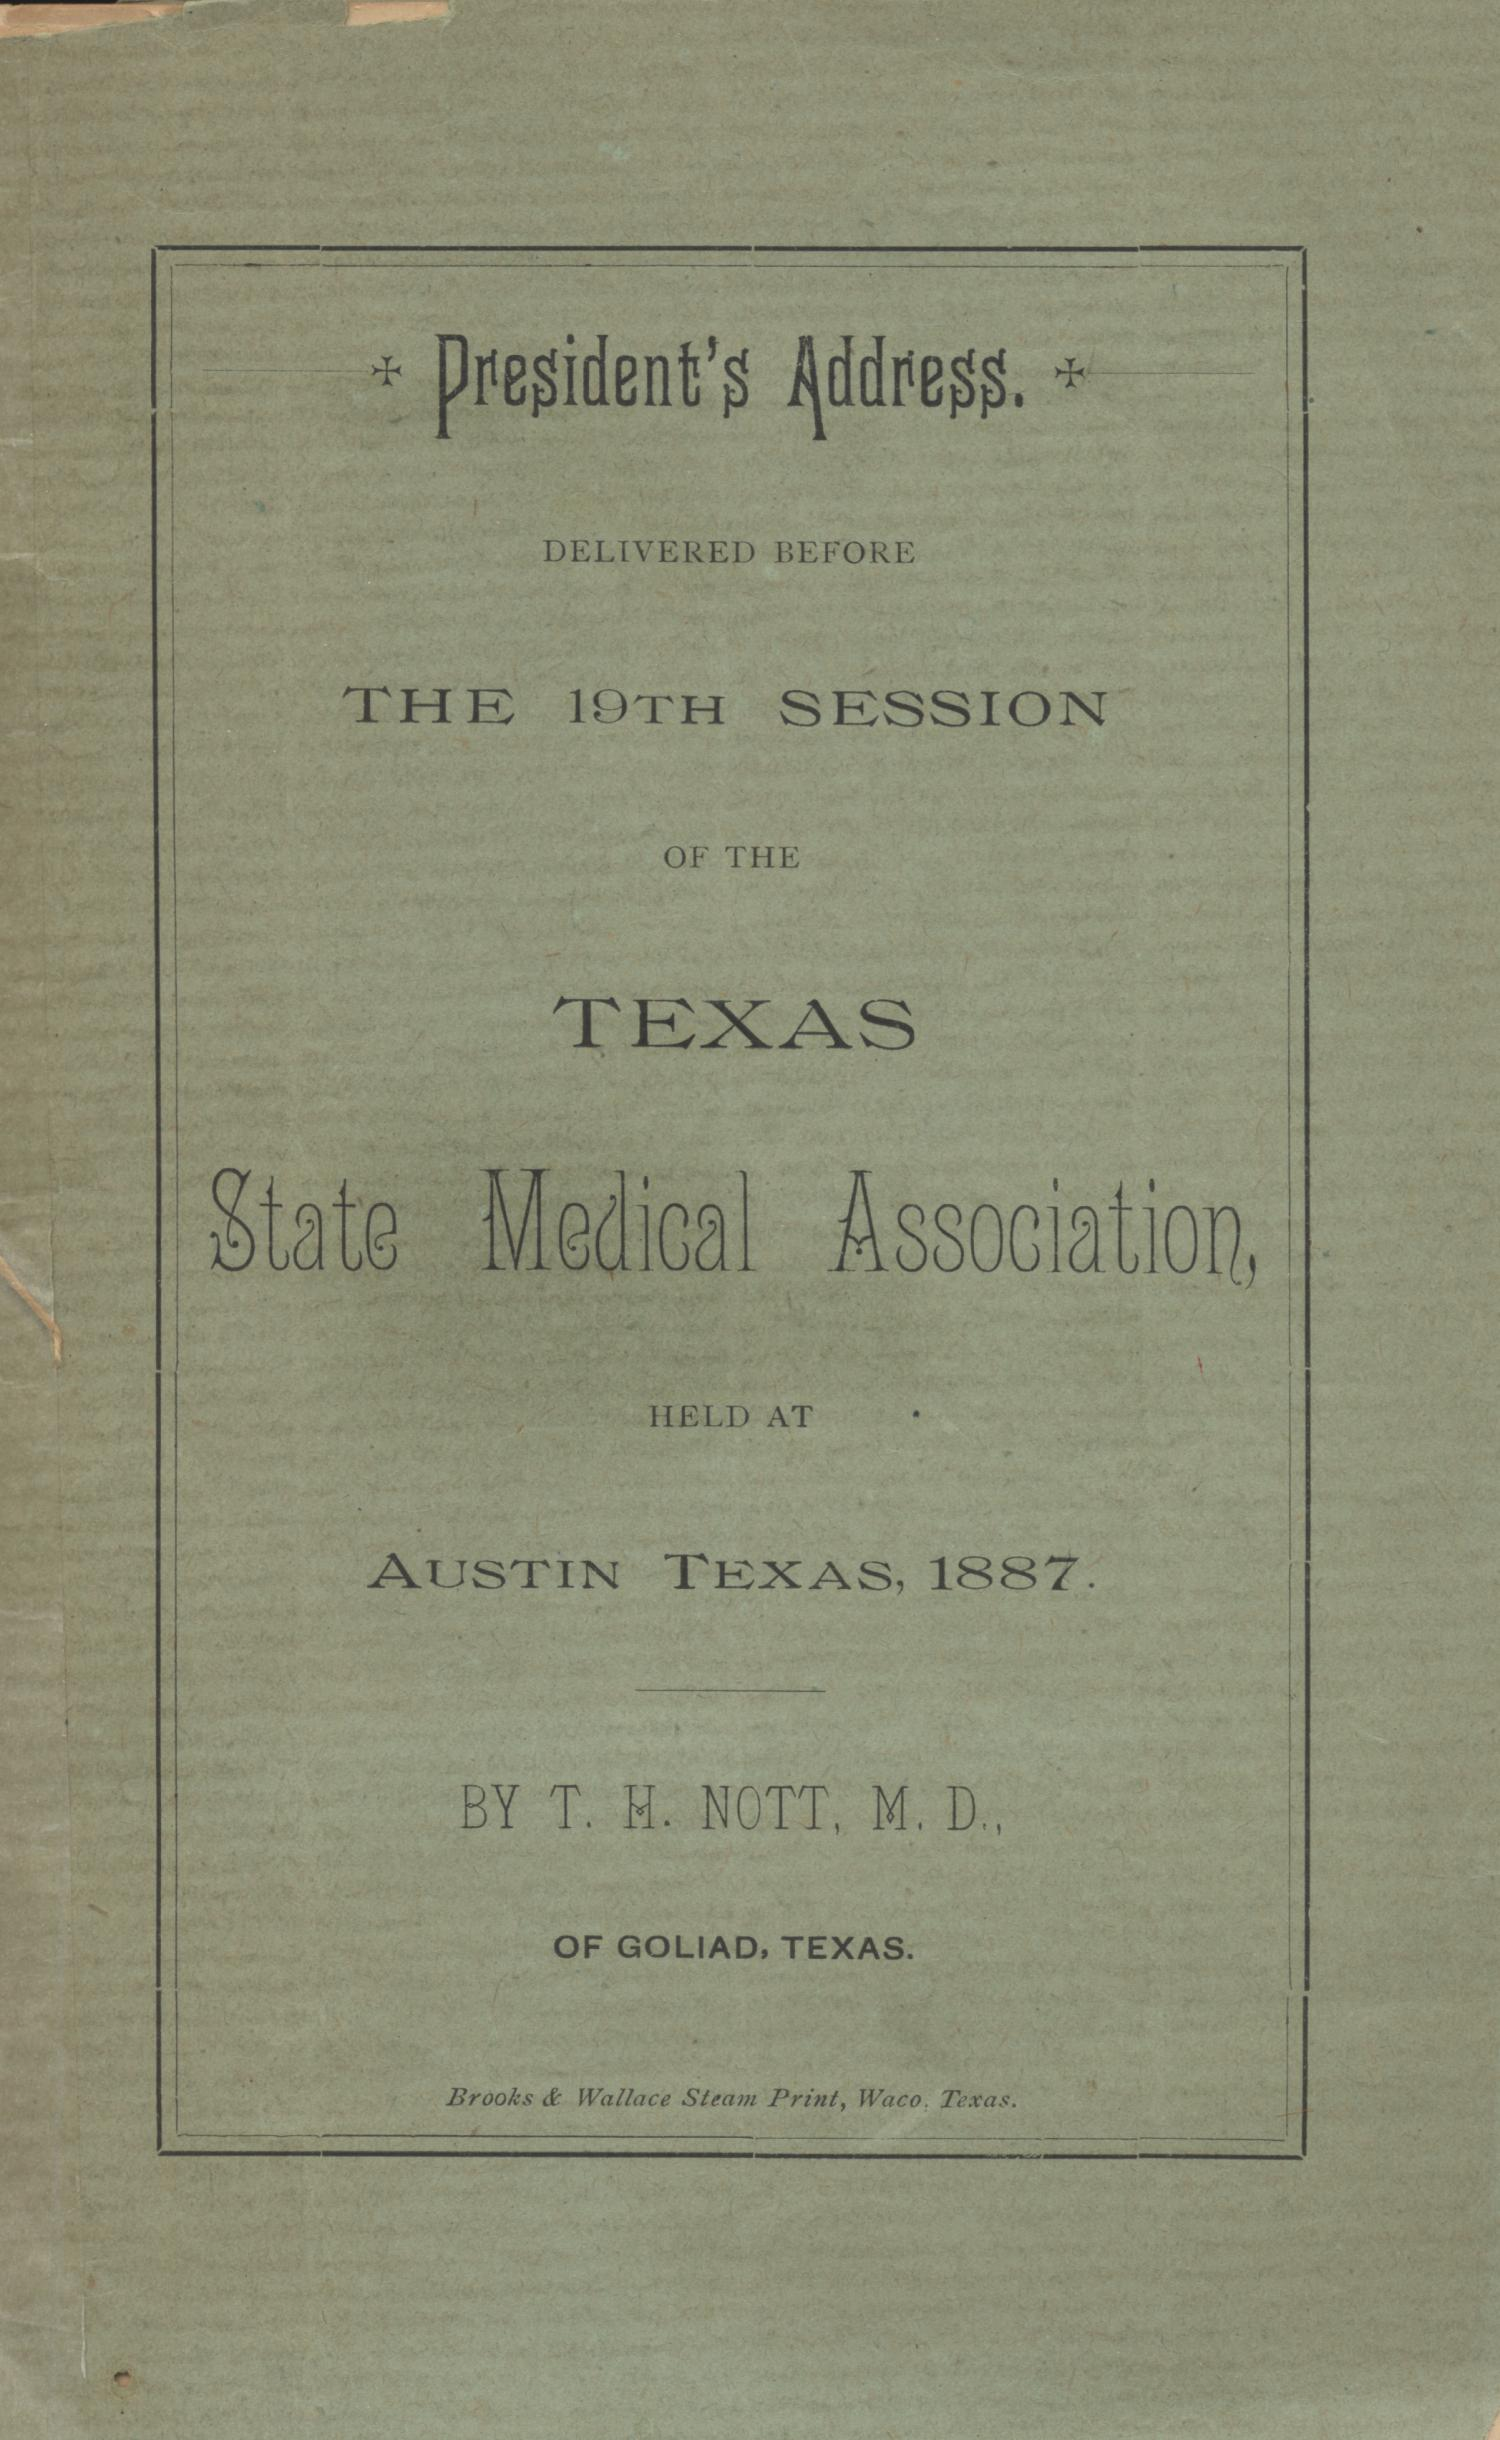 President's Address, Delivered Before the 19th Session of the Texas State Medical Association                                                                                                      [Sequence #]: 1 of 20